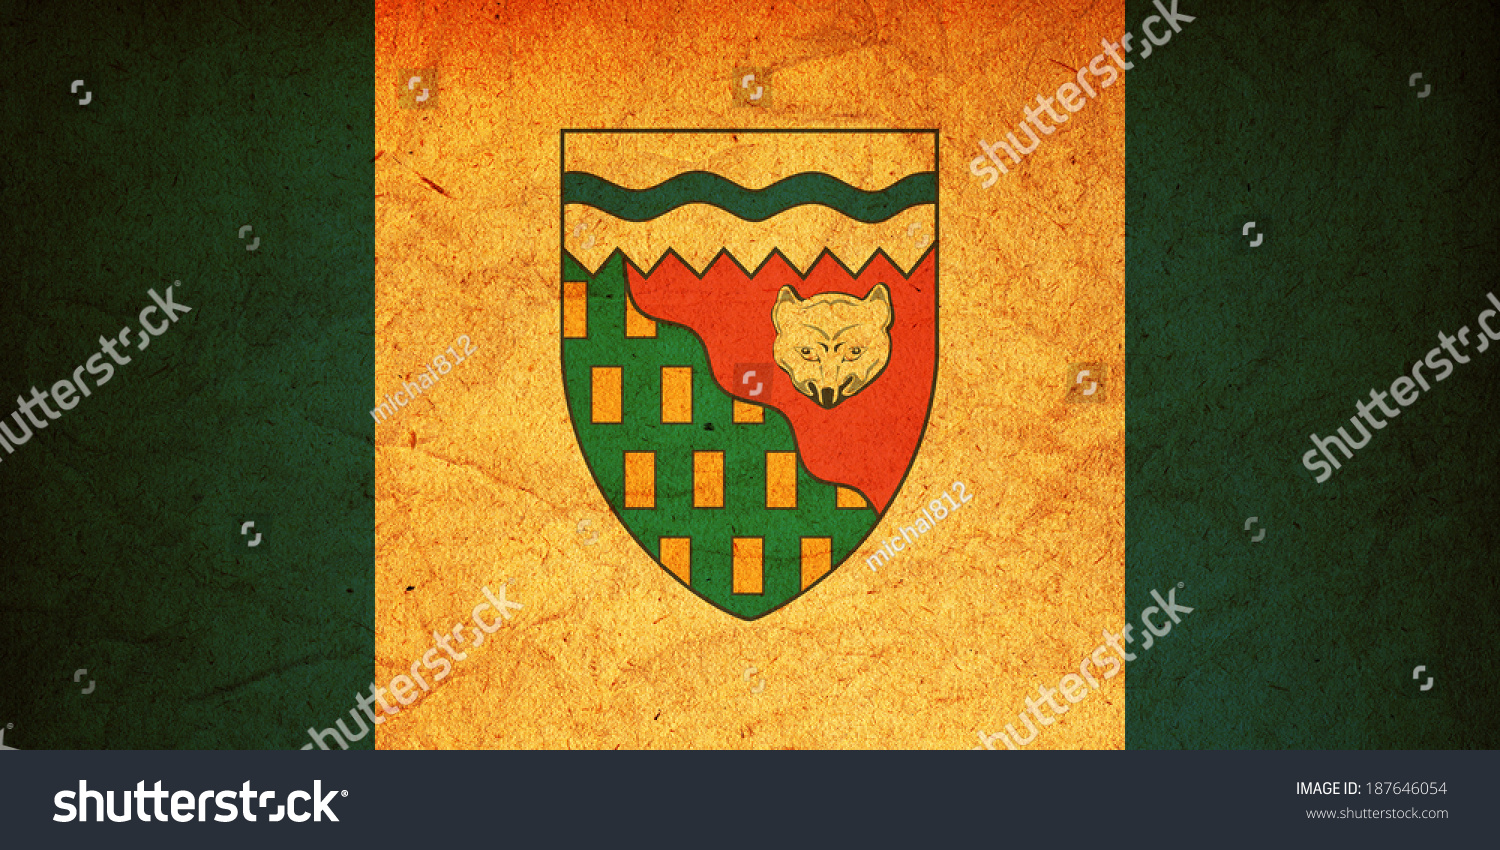 Some very old vintage flag northwest stock illustration 187646054 some very old vintage flag of northwest territories biocorpaavc Choice Image